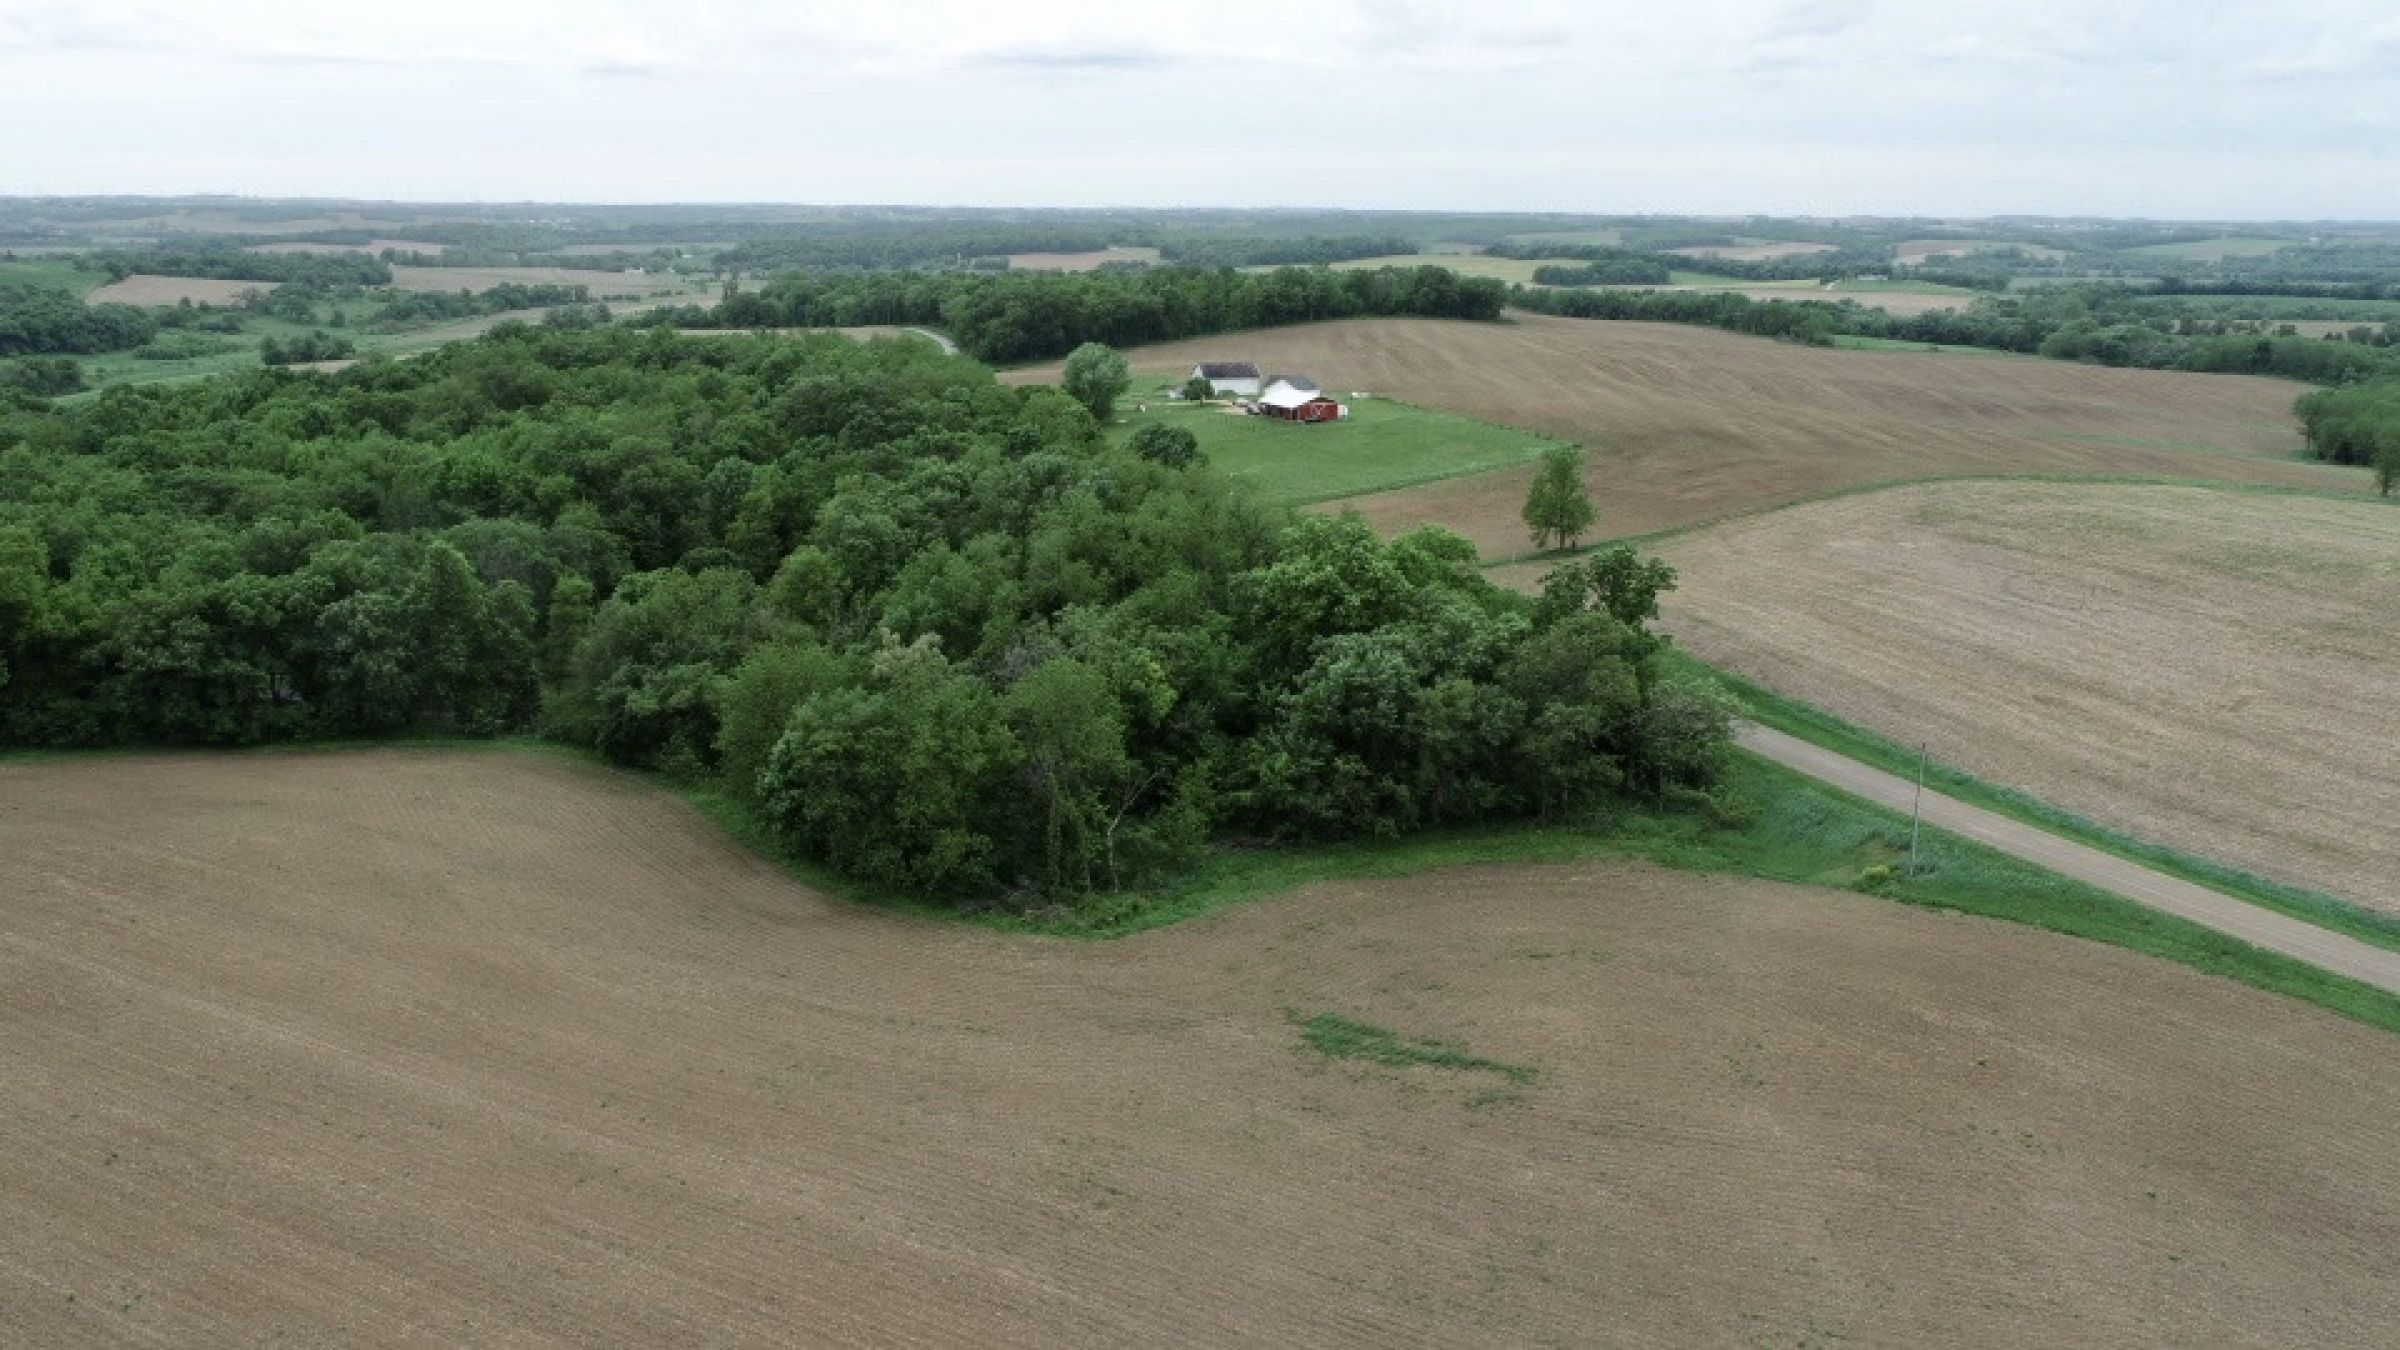 land-lafayette-county-wisconsin-1-acres-listing-number-15559-8-2021-05-28-184447.jpg